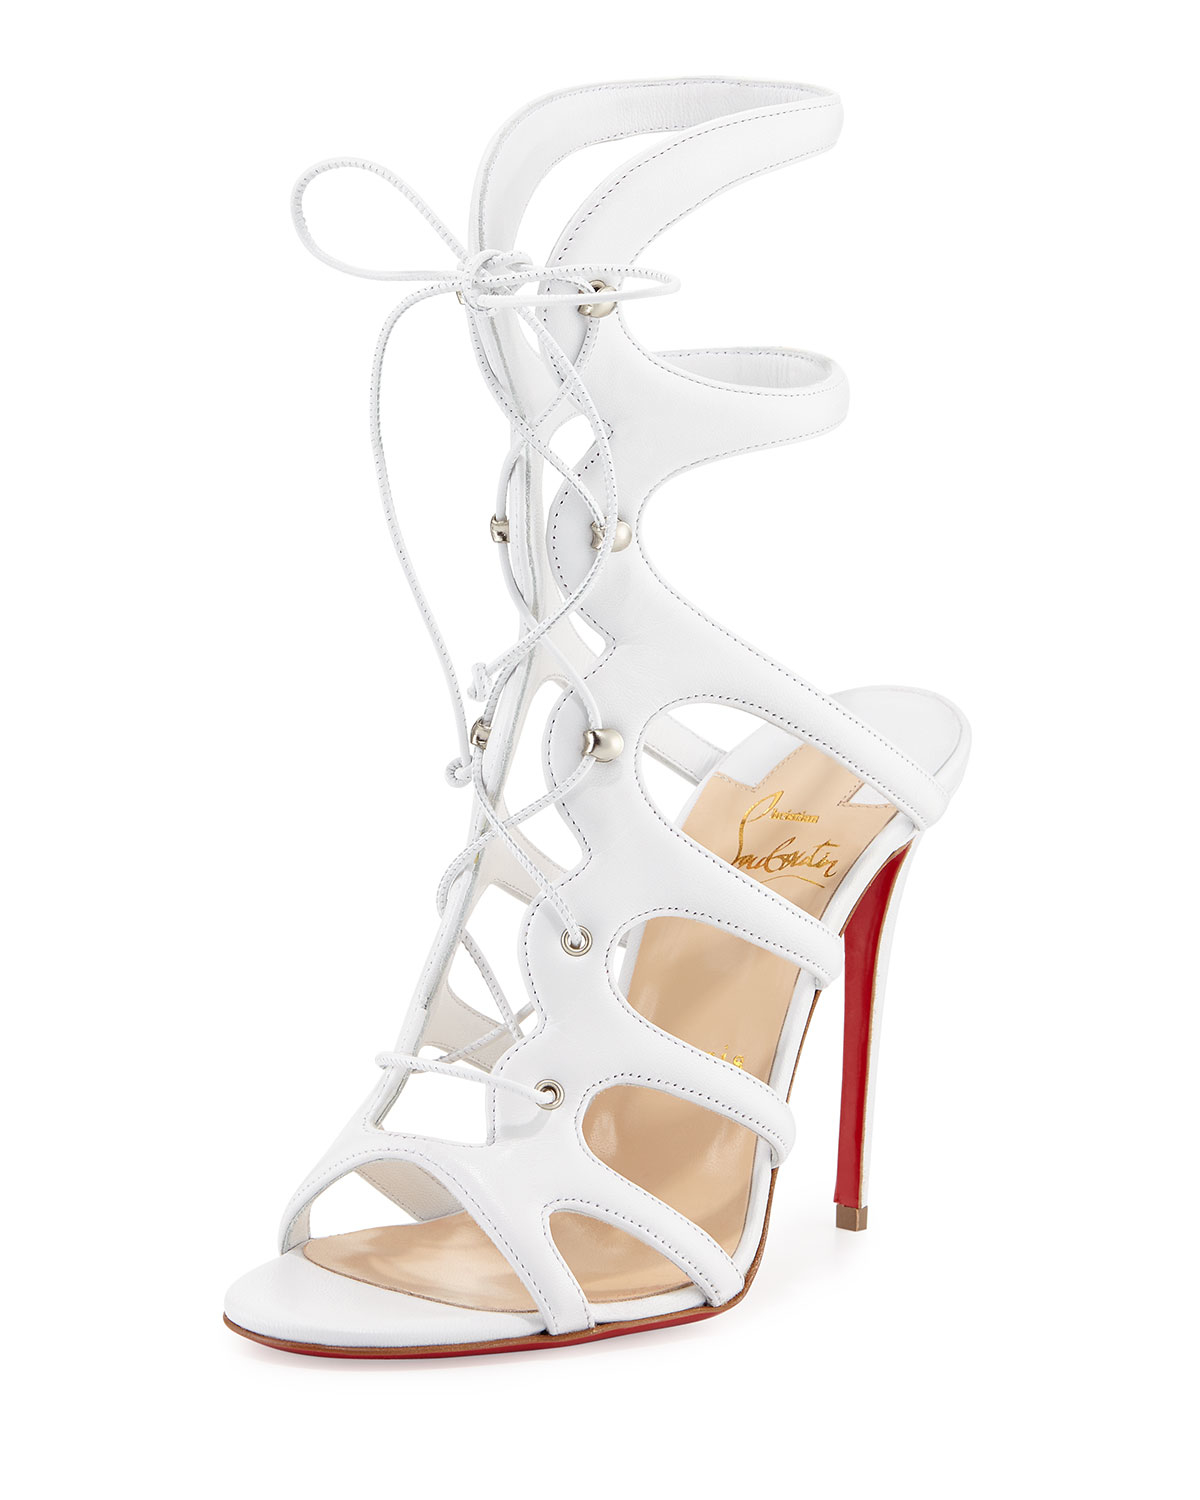 christian louboutin houla hot patent 100mm red sole sandal